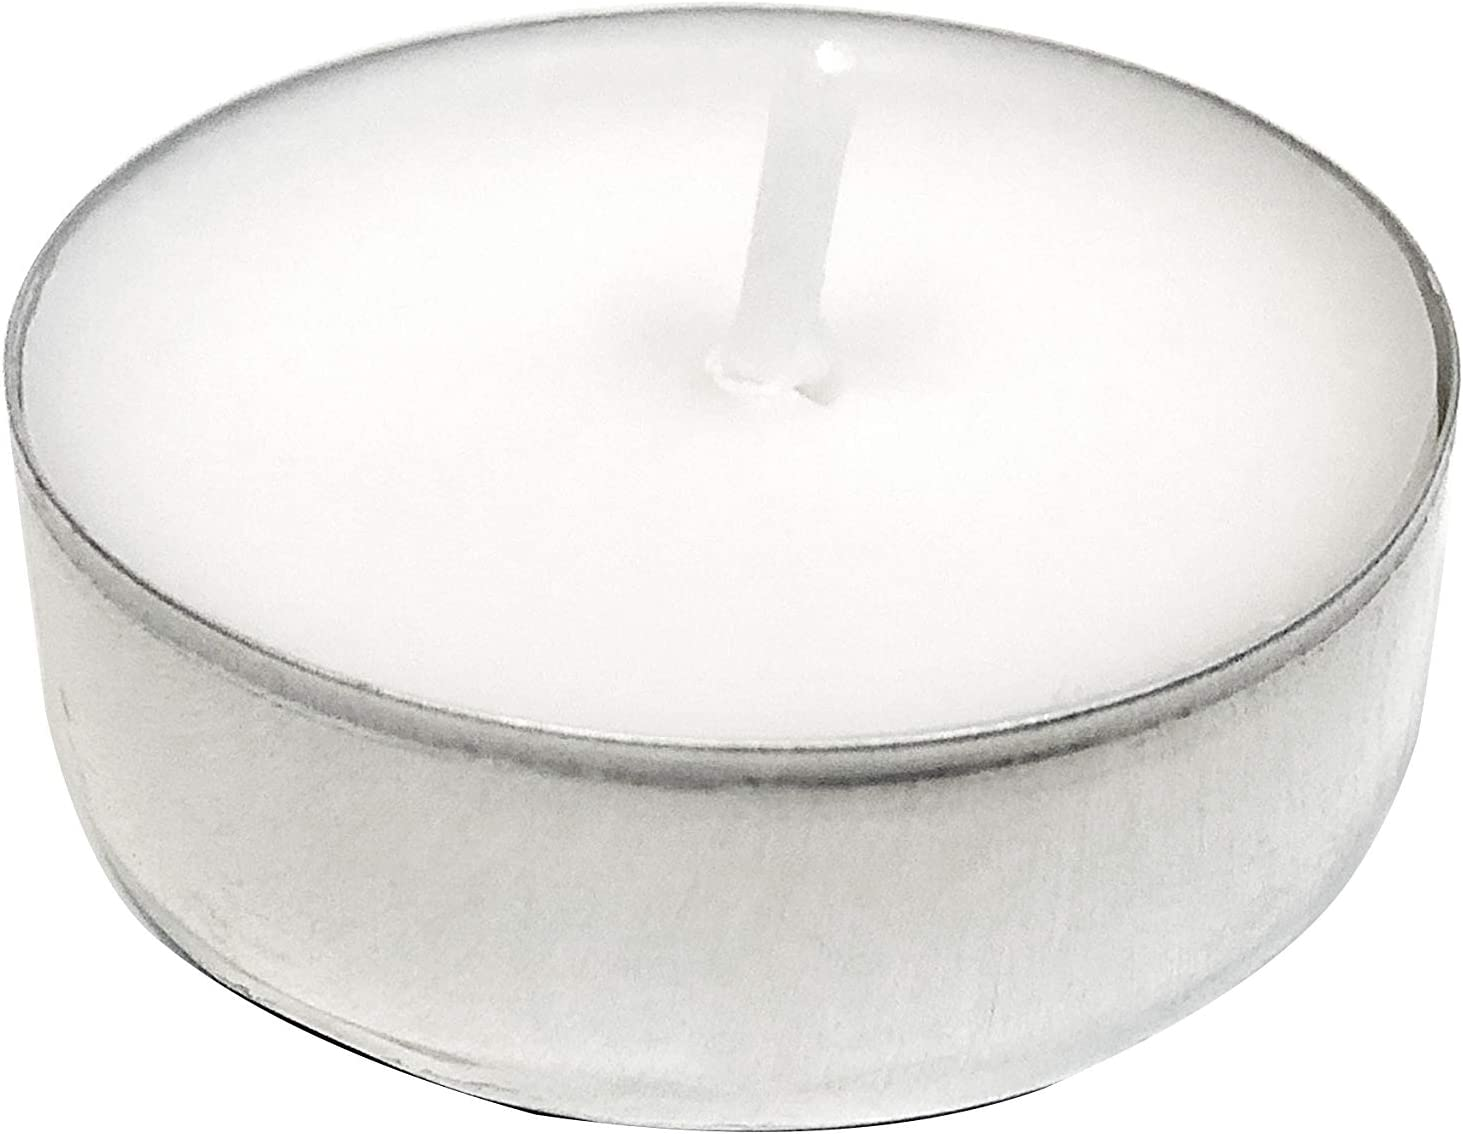 AmazonBasics Unscented Tealight Candles, 200-Pack